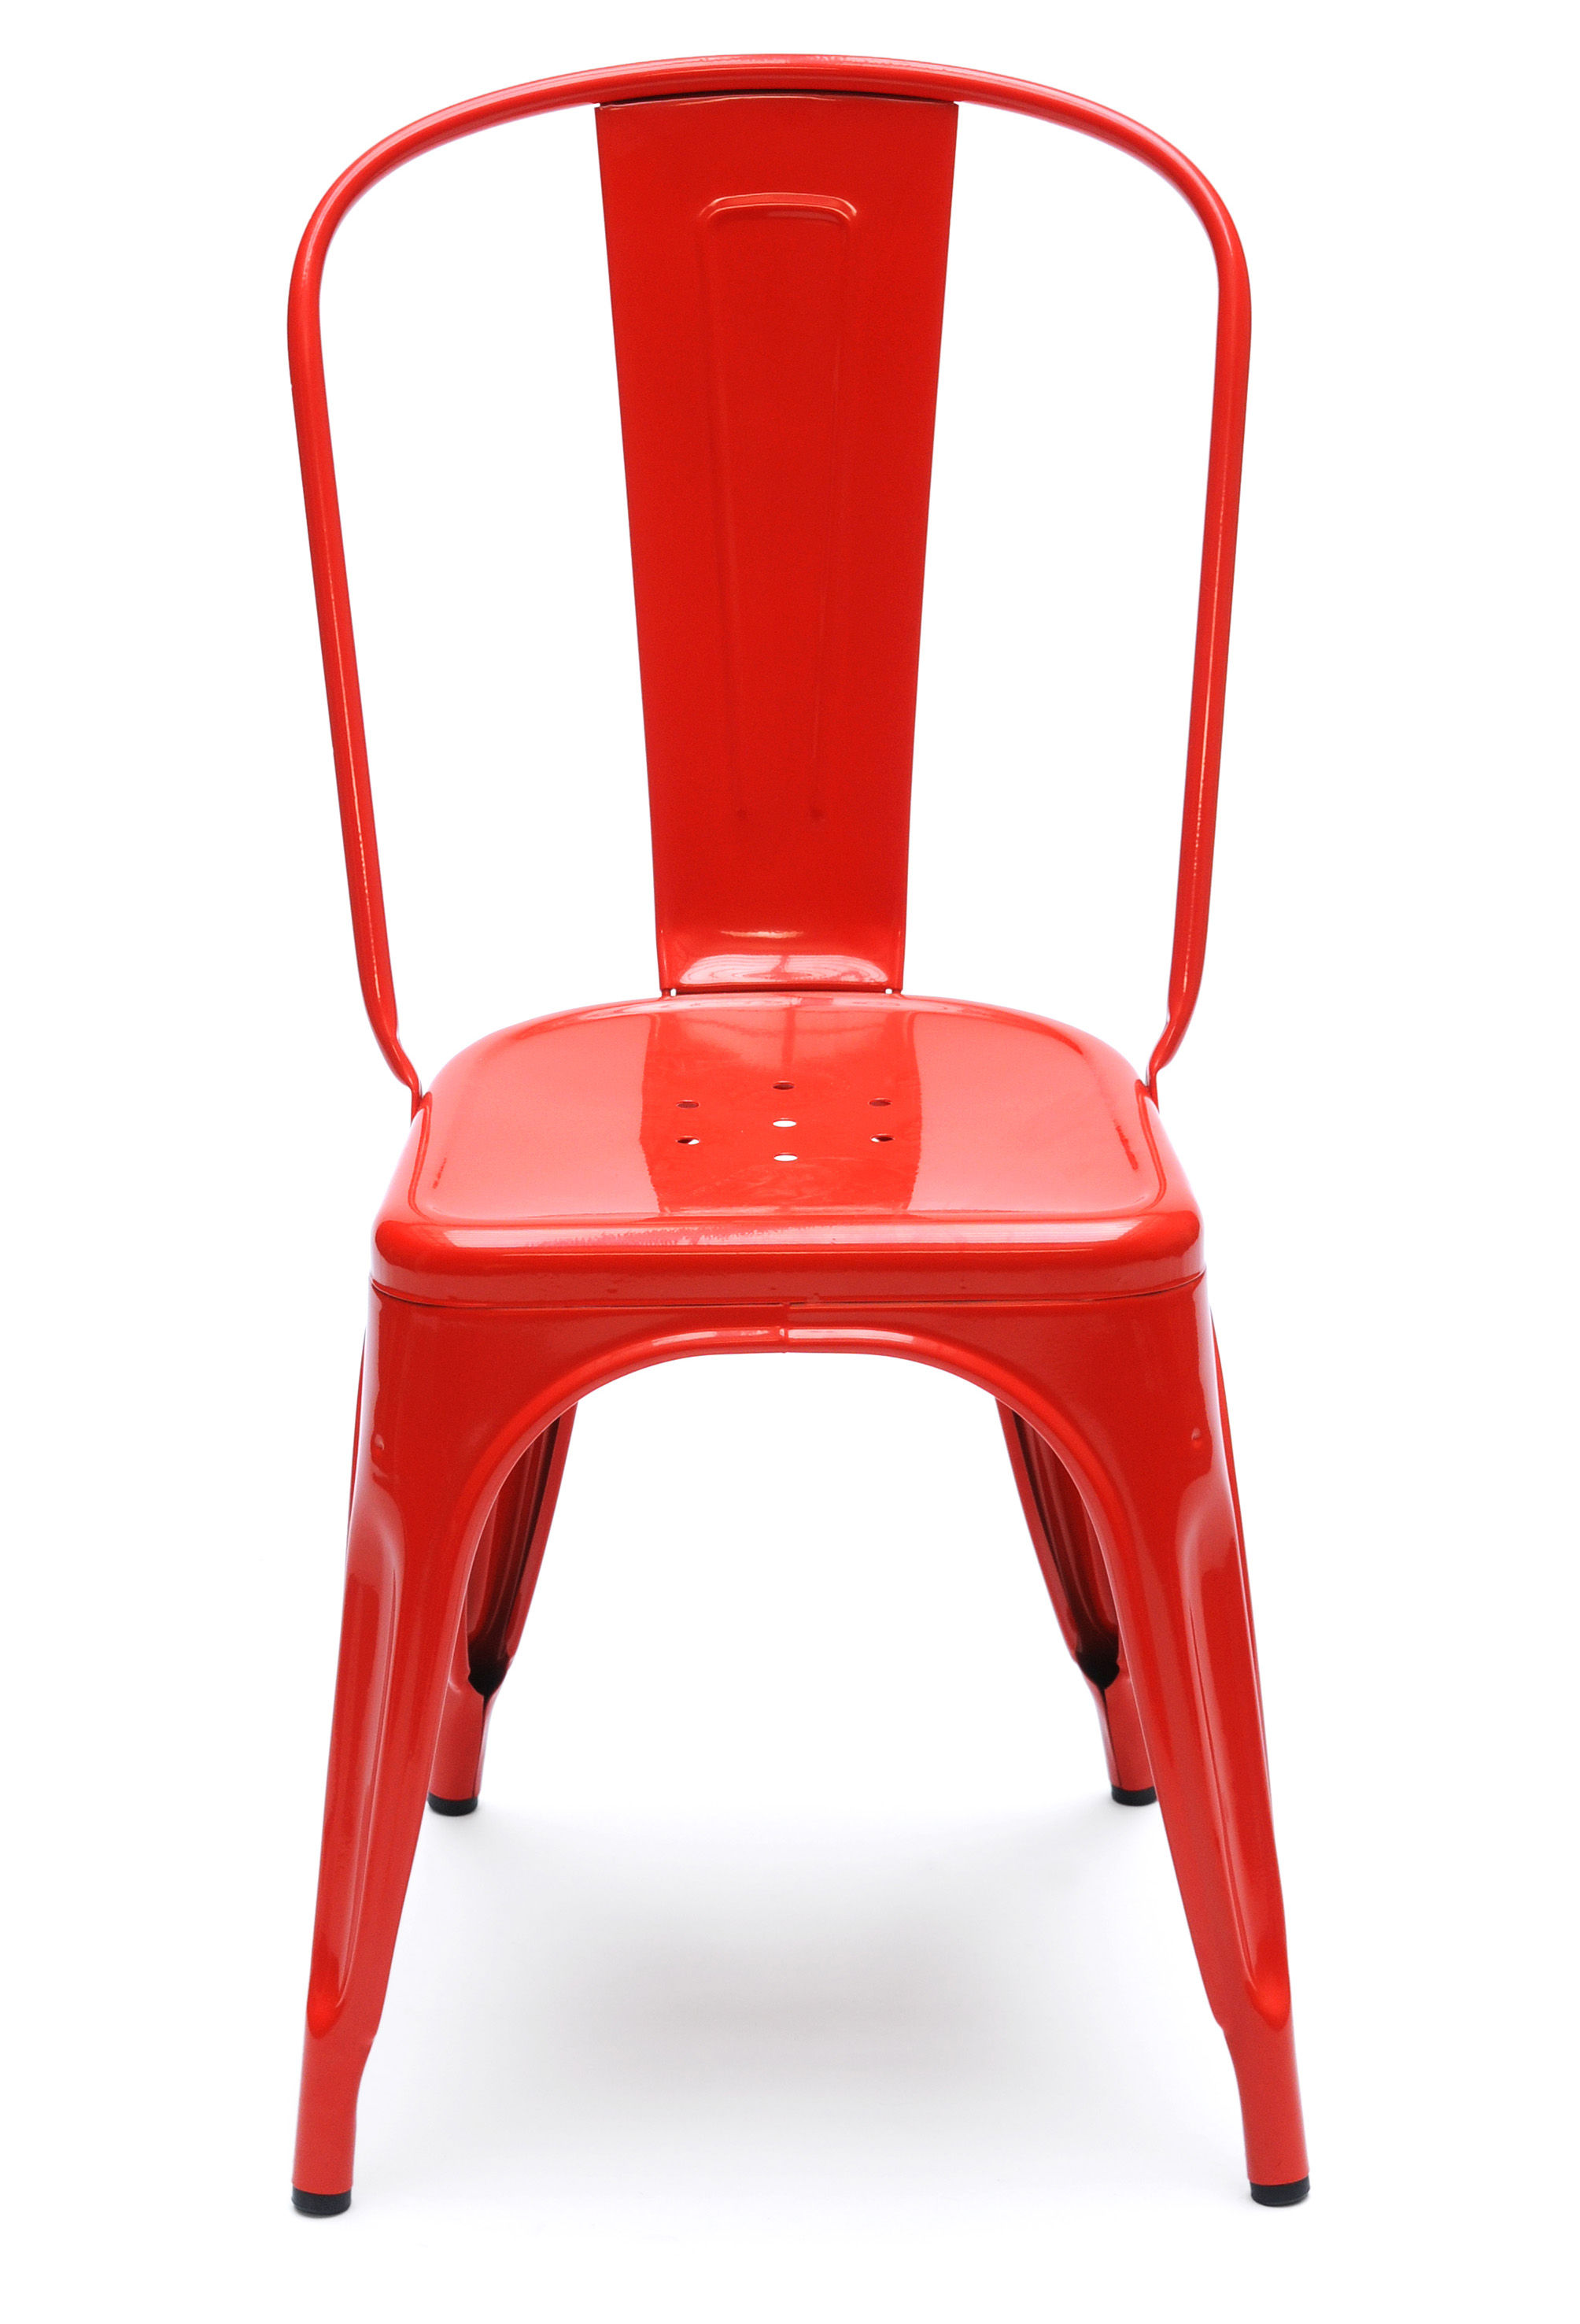 metal chair mfb wooden tolix chairs style stool xavier with pauchard seat